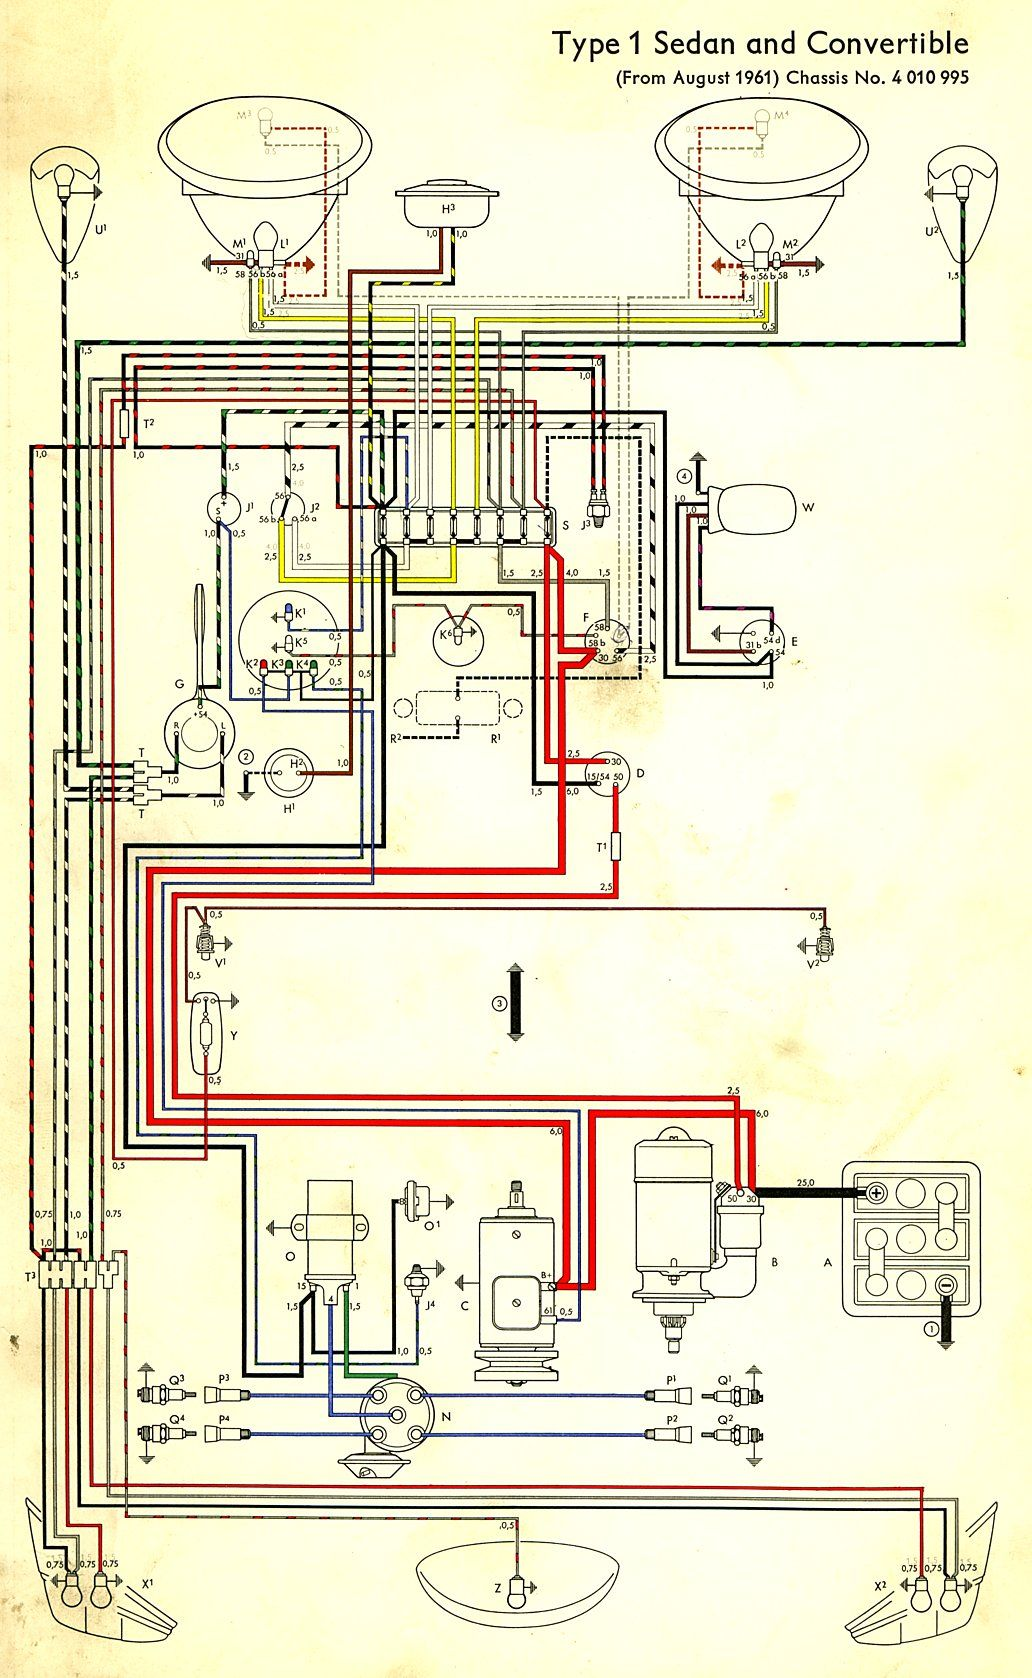 Vw 1600 Wiring Diagram Electrical Work 1969 Datsun In Color 1964 Bug Beetle Convertible The Samba Rh Pinterest Com Type 3